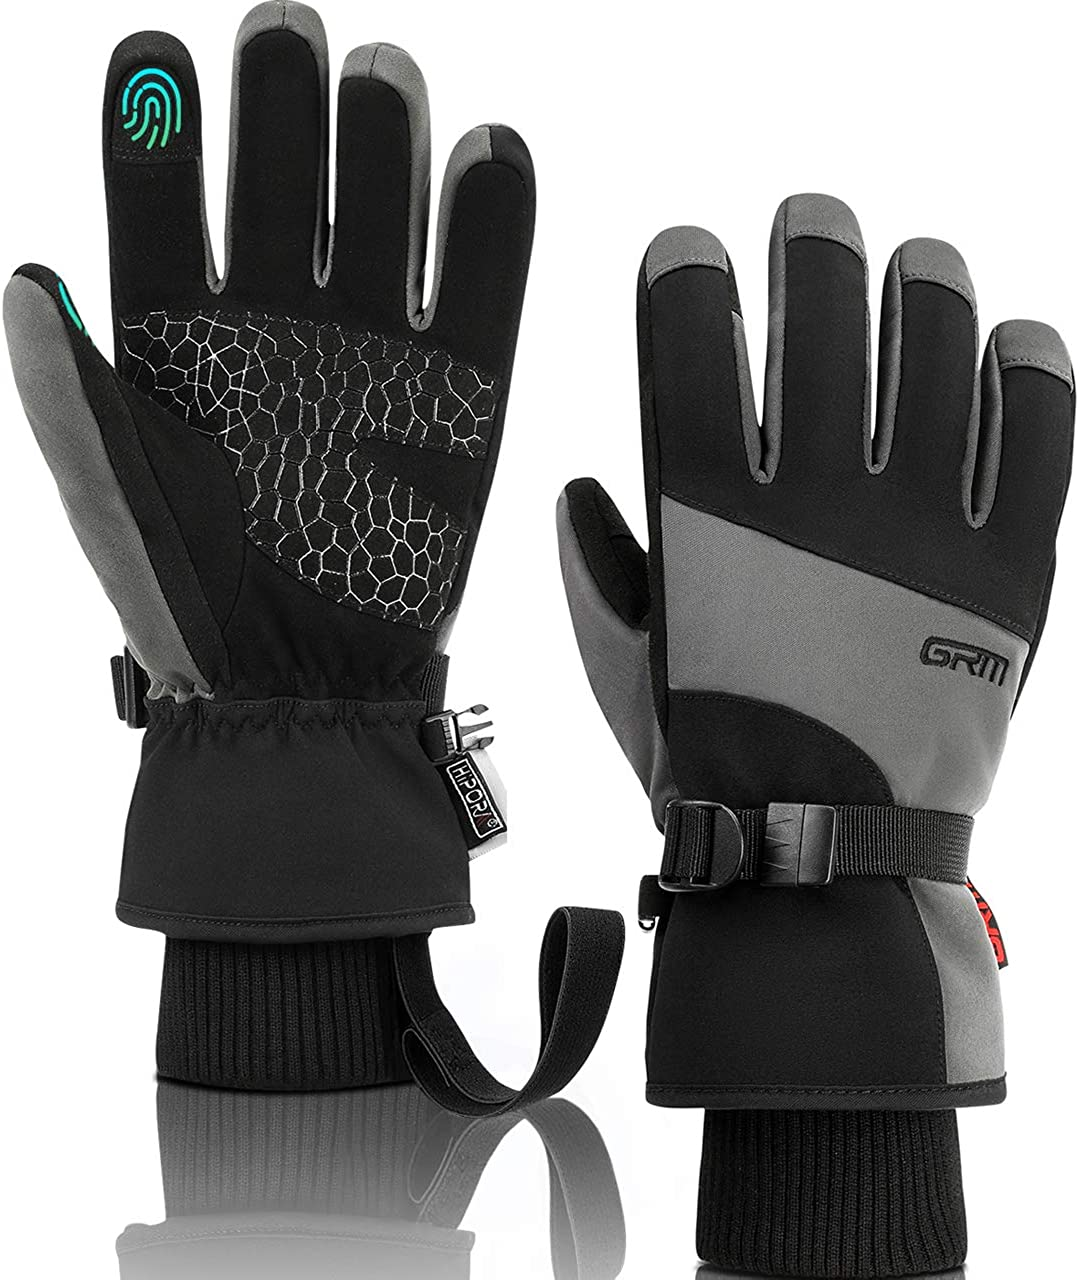 GRM Ski Snow Mittens for Spring new work one after another OFFicial site Men Snowboard Gl Waterproof Warm Women